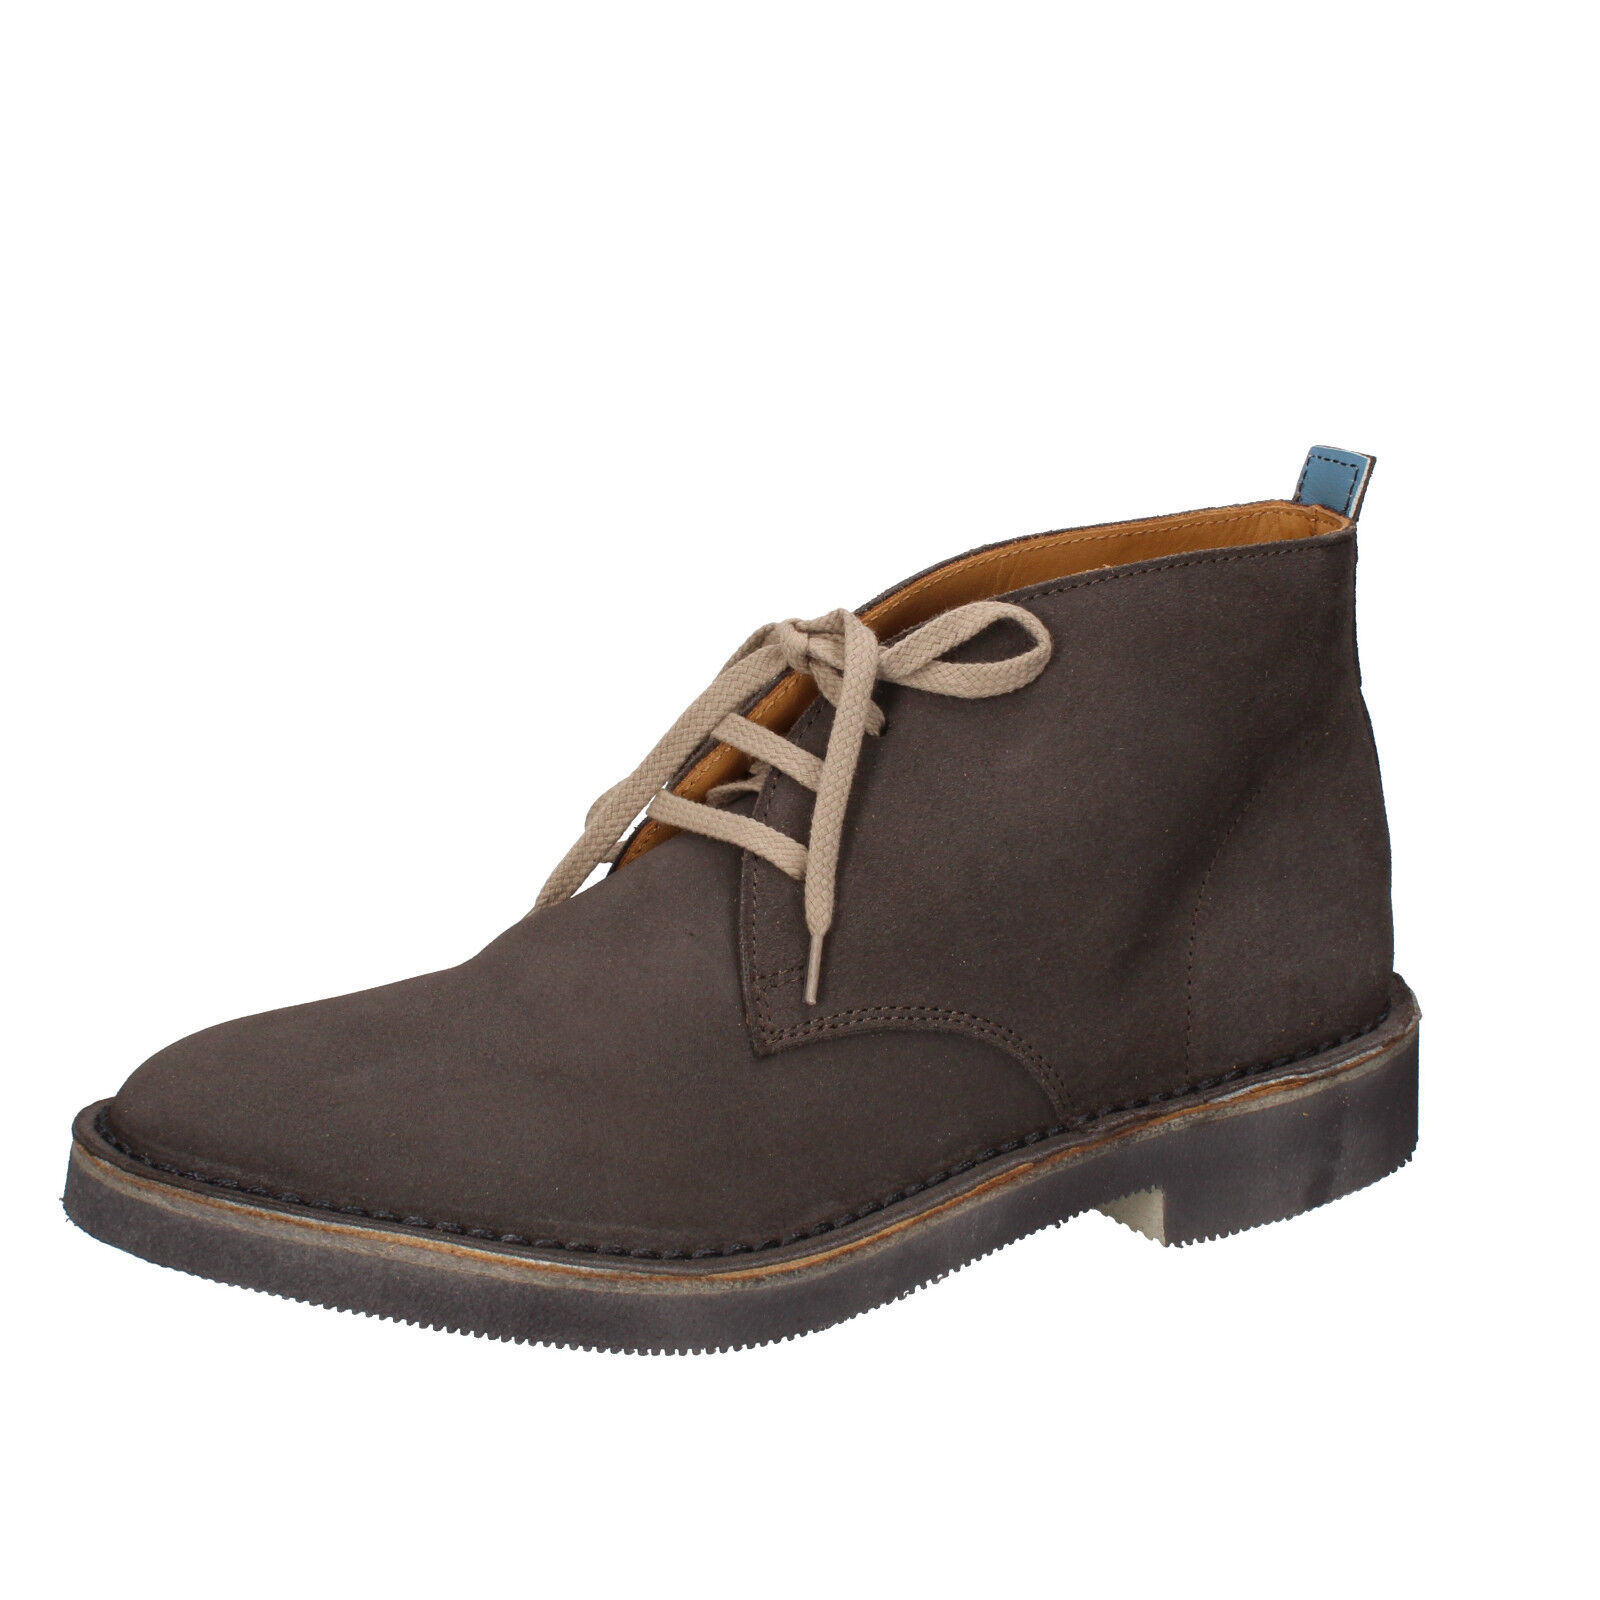 Mens shoes MOMA 9 () desert boots grey suede AB328-E